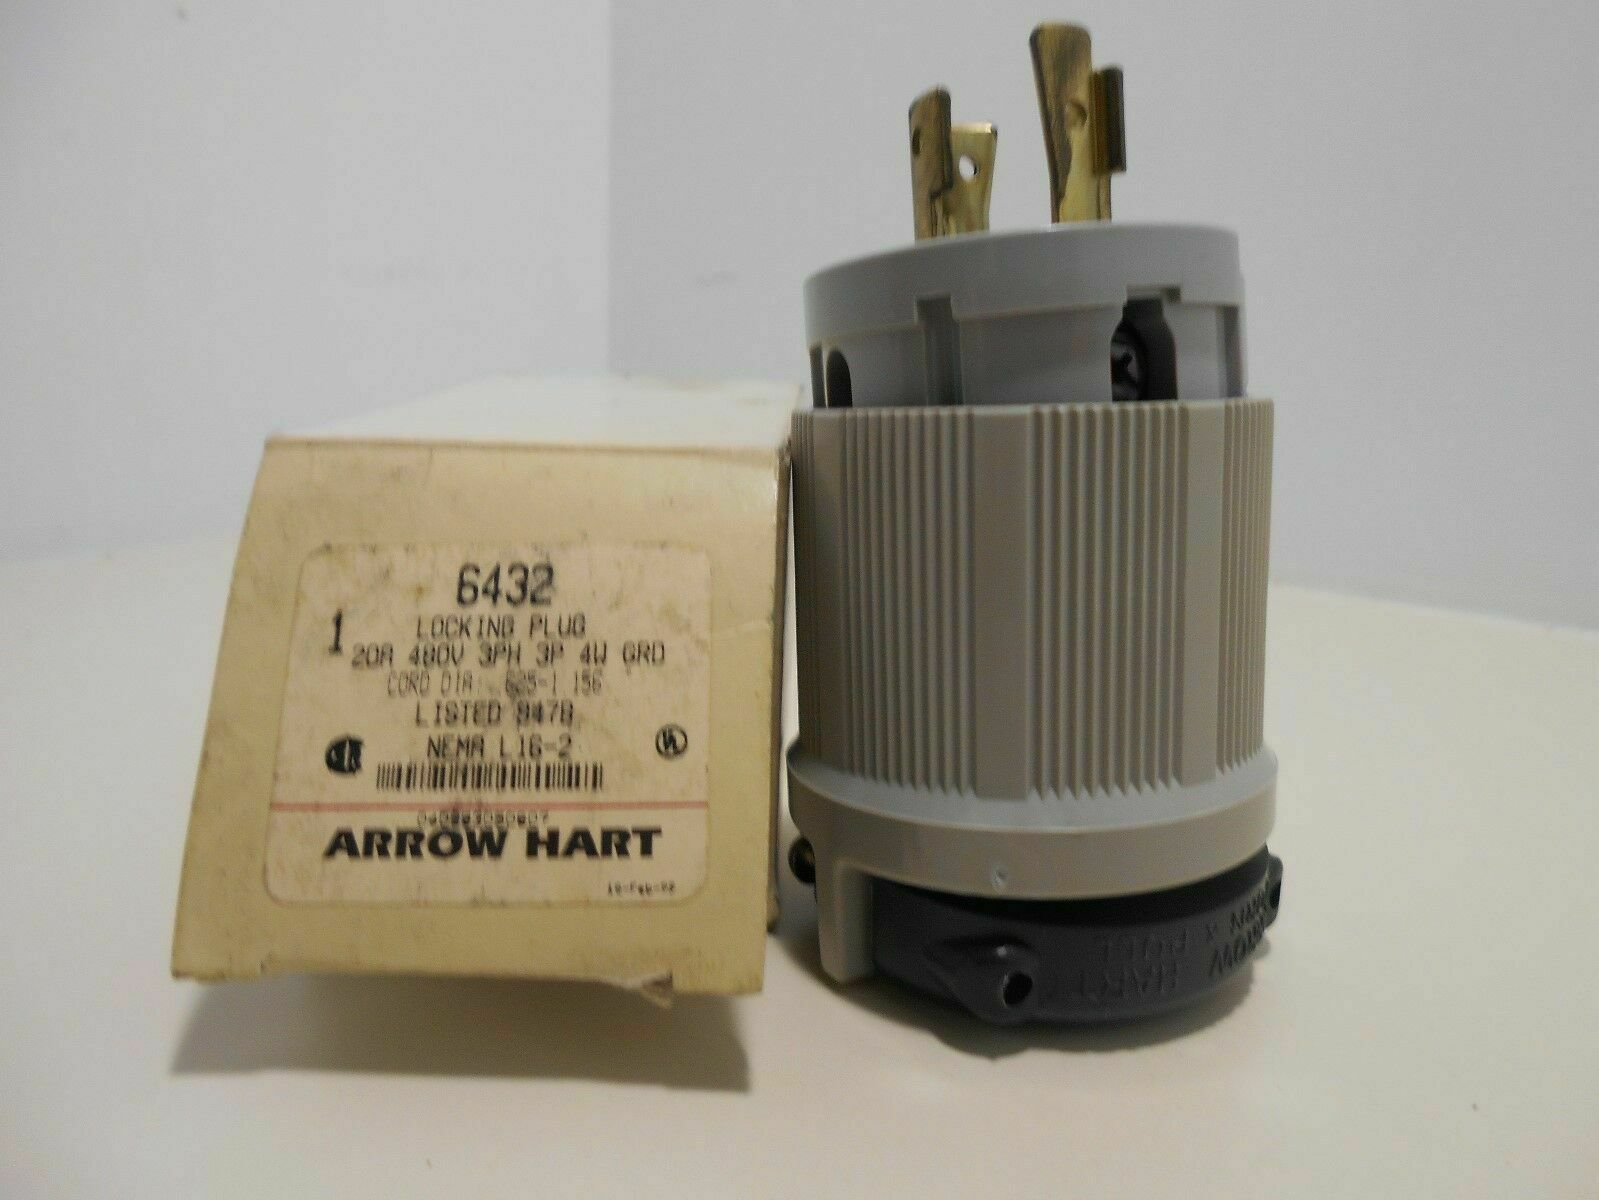 Arrow Hart 6432 Locking Plug 20 Amp 480 Volt 3 Phase 3 Pole 4 Wire